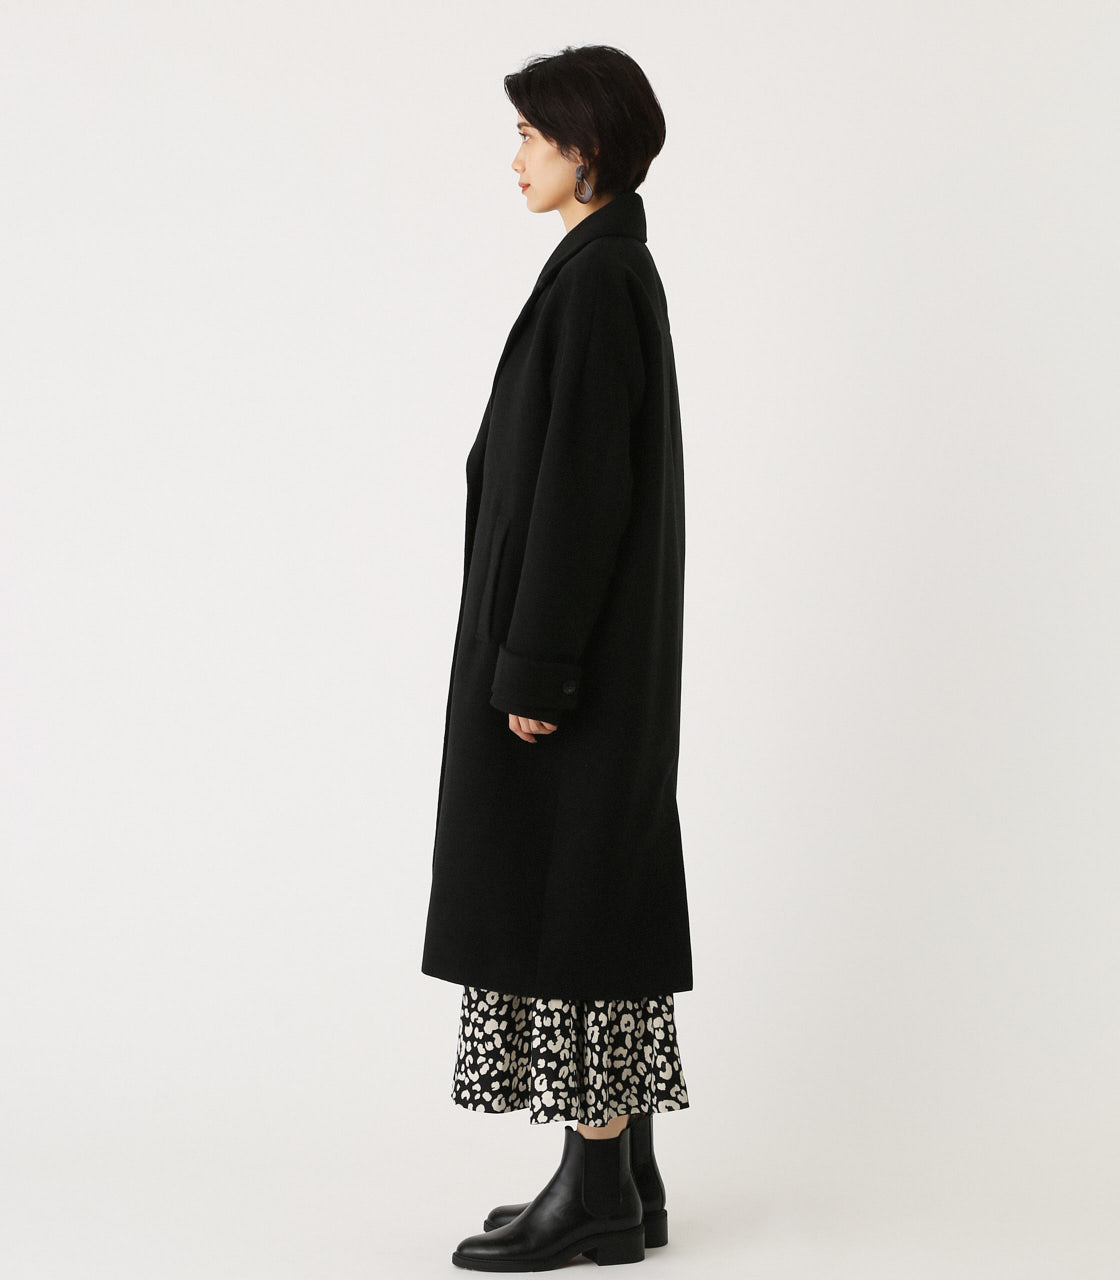 OVER LOOSE CHESTER COAT/オーバールーズチェスターコート 詳細画像 BLK 5